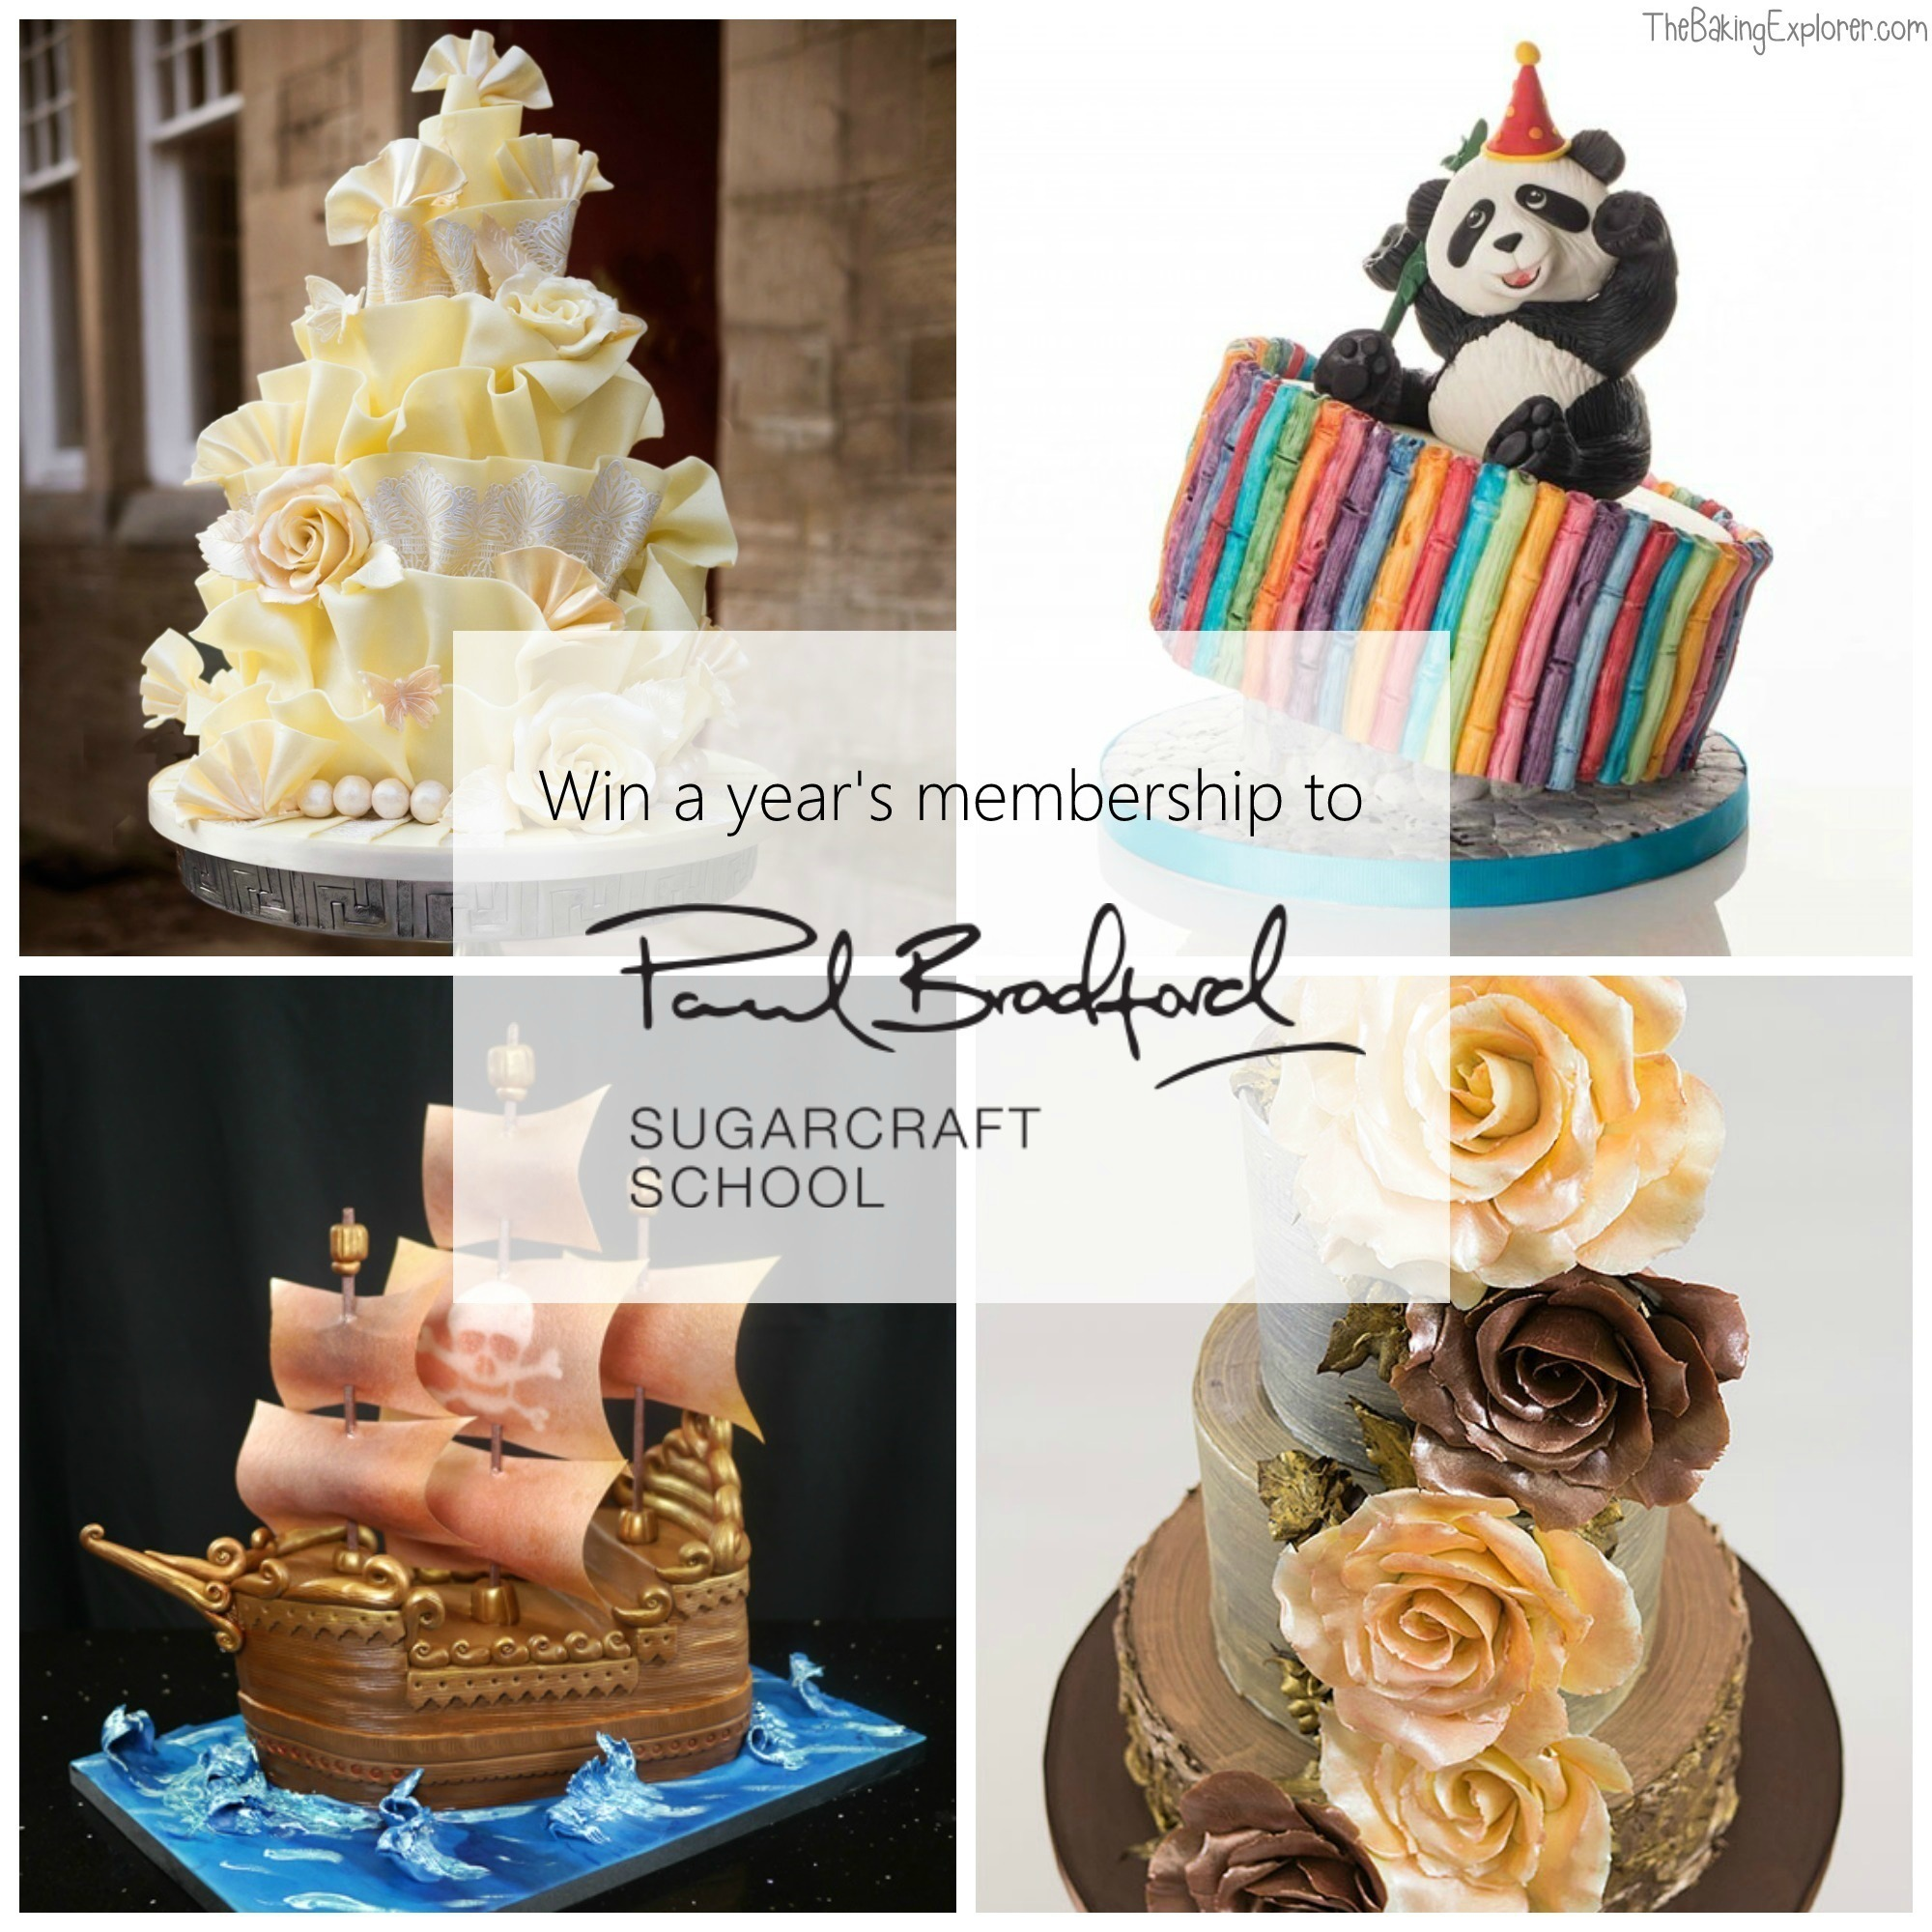 Win A Year's Premium Membership to Paul Bradford Sugarcraft School!